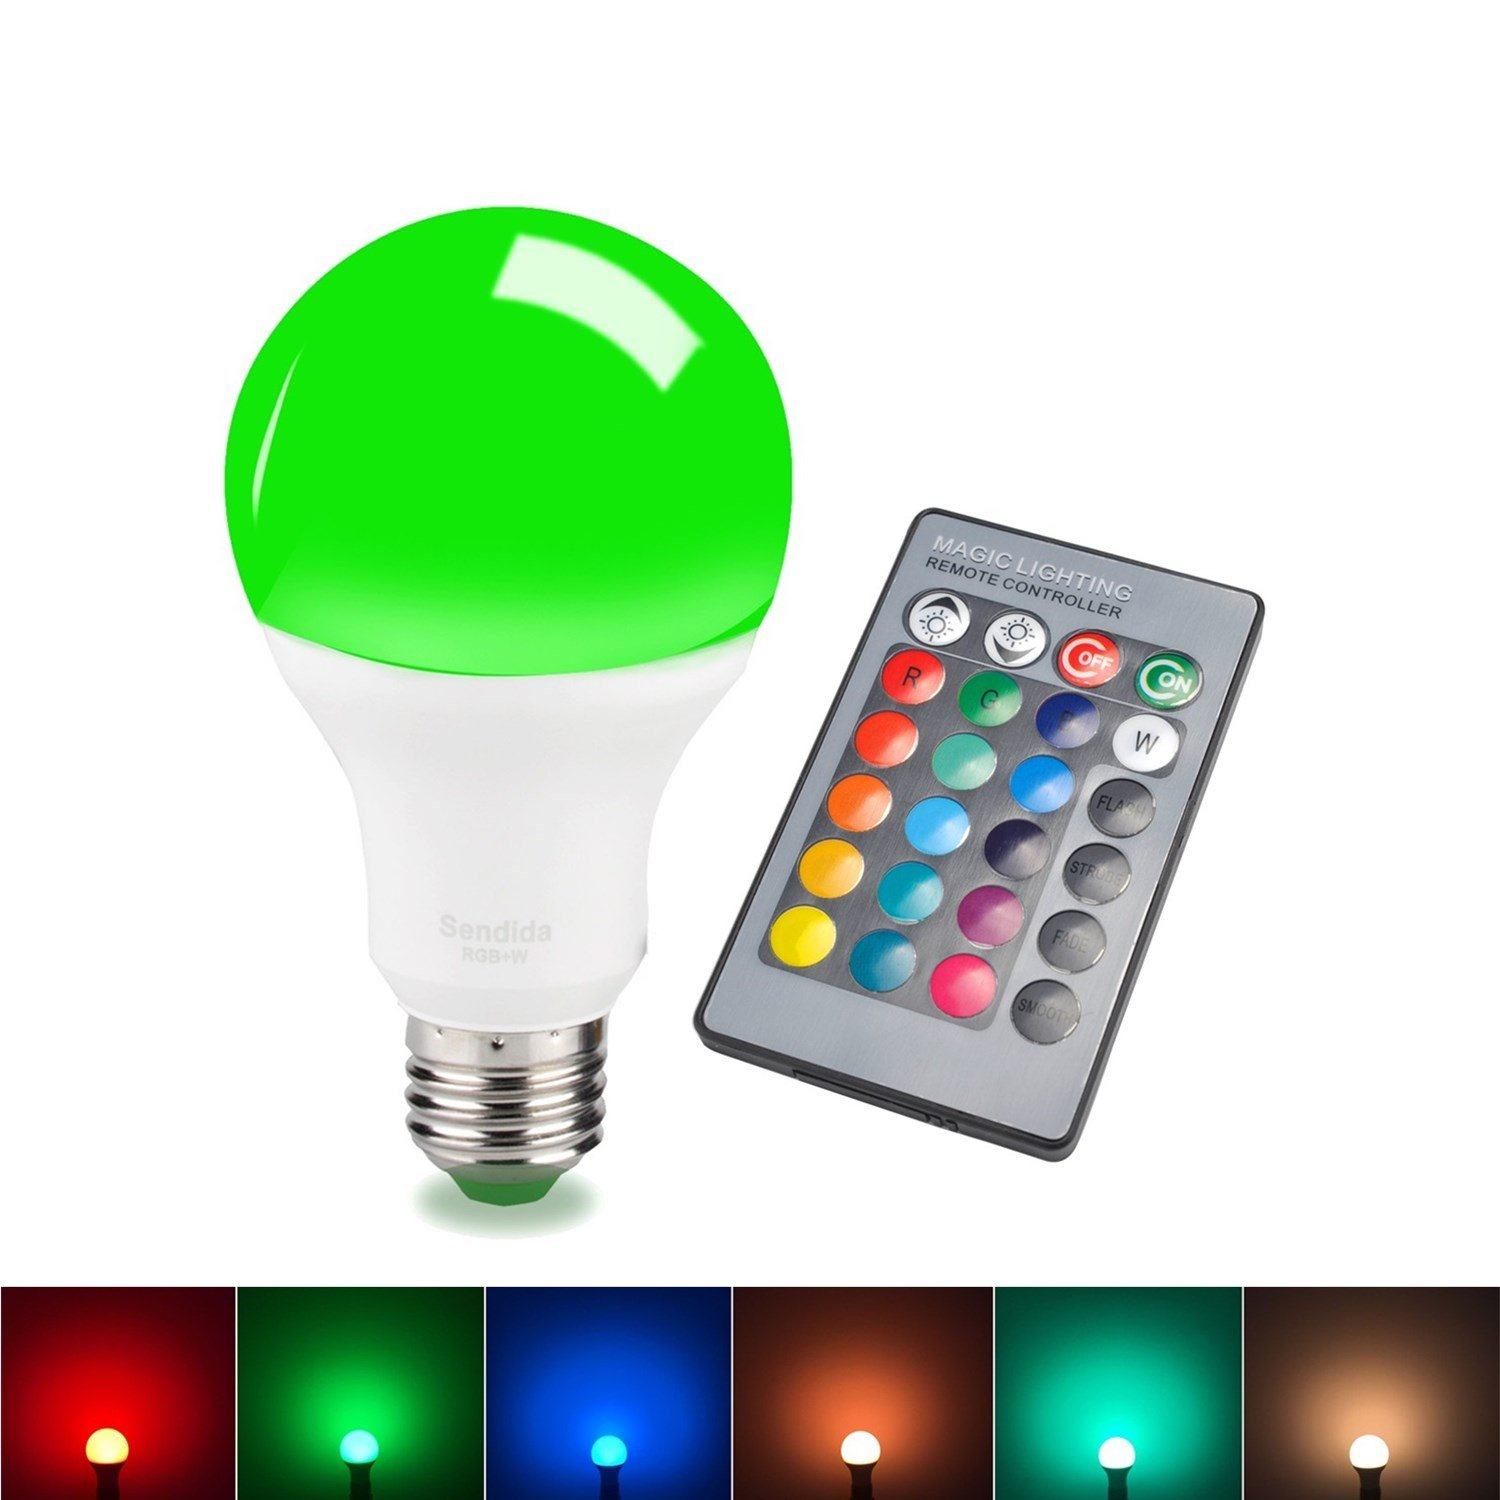 Elegant Sdida LED RGB Bulb E27 Equivalent To 15W, Remote Control, Color Changing  And Dimmable Light Bulb     Amazon.com Design Ideas